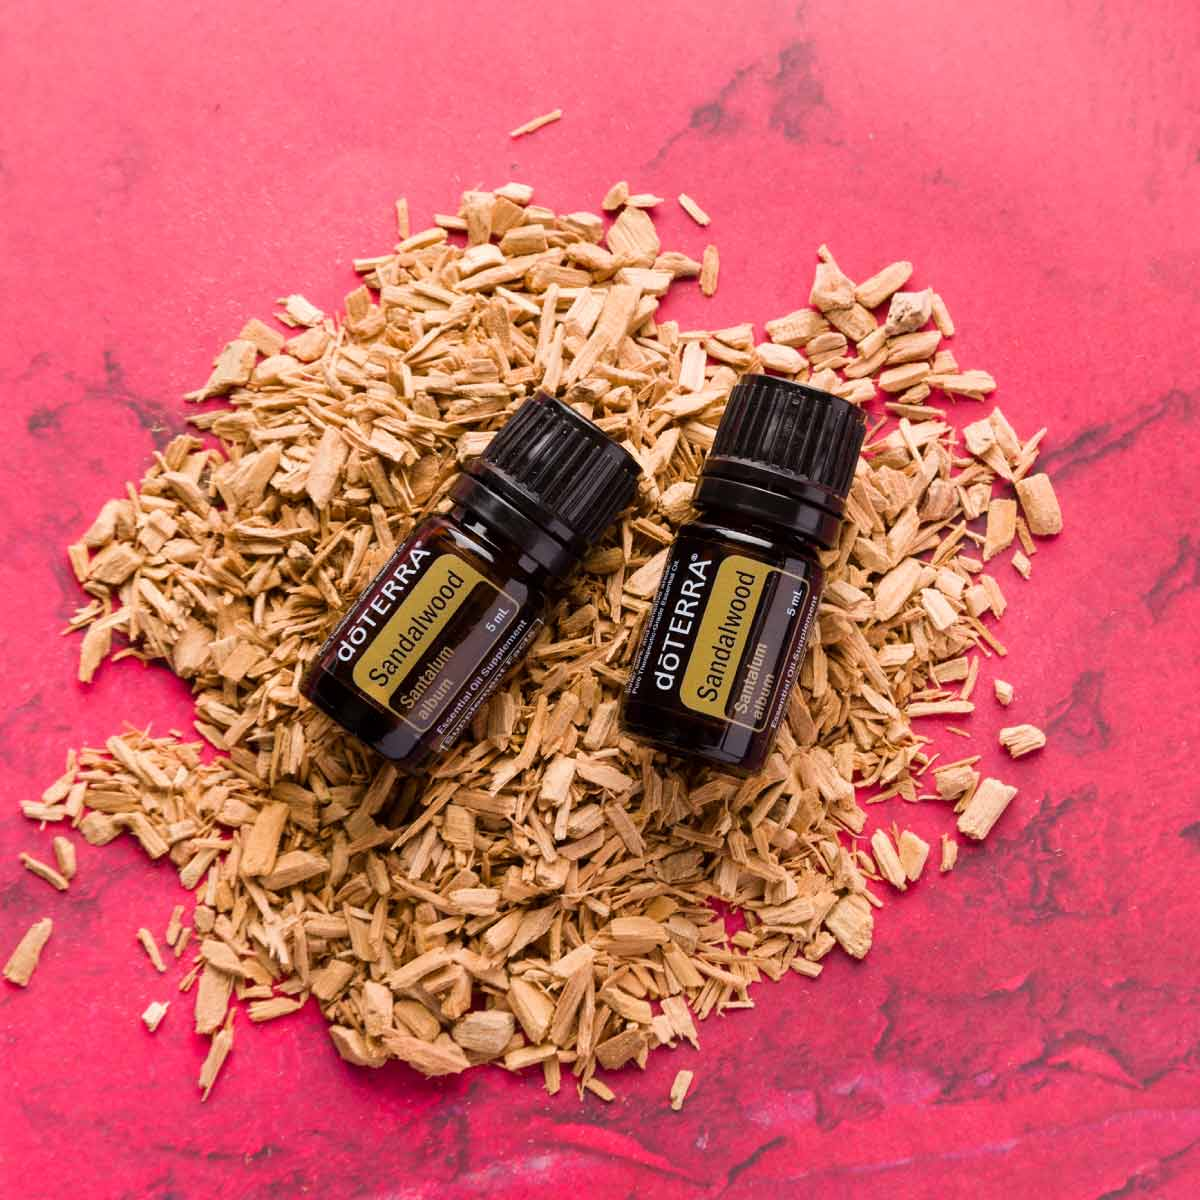 Two bottles of Sandalwood oil resting on a pile of wood shavings. How do I use Sandalwood essential oil? Sandalwood essential oil can be used to promote healthy looking skin, to create a calming environment, or to promote grounding feelings during meditation.